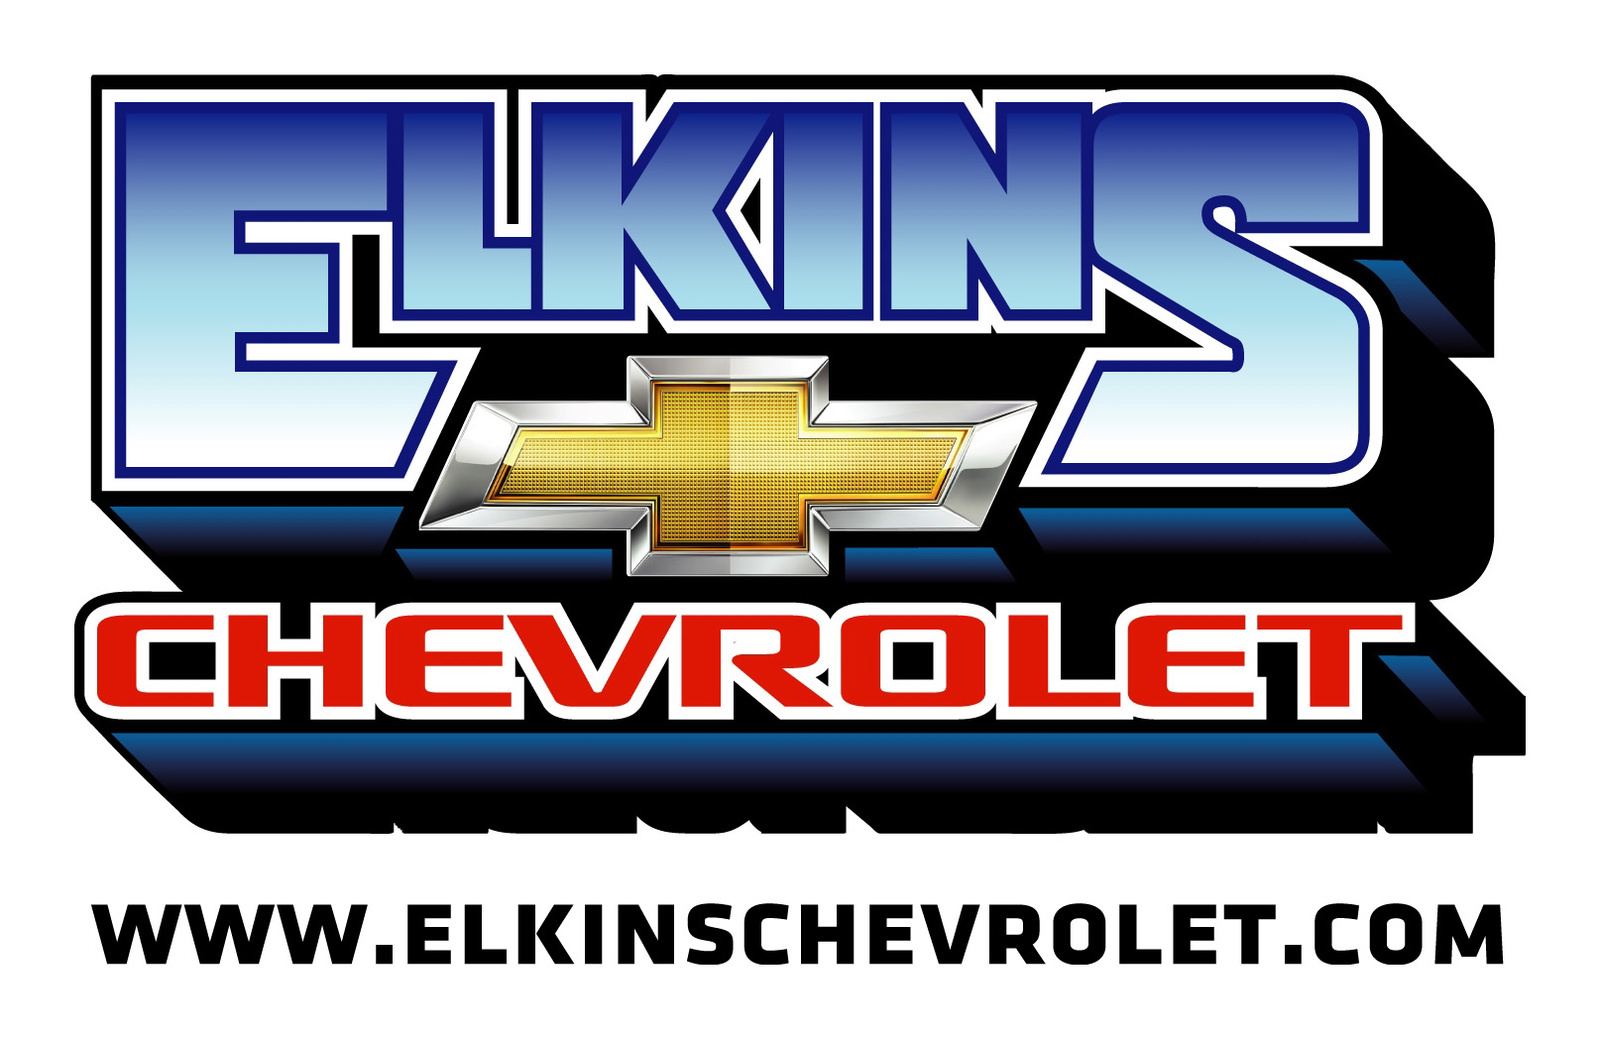 Honda Dealers Nj >> Elkins Chevrolet - Marlton, NJ: Read Consumer reviews, Browse Used and New Cars for Sale